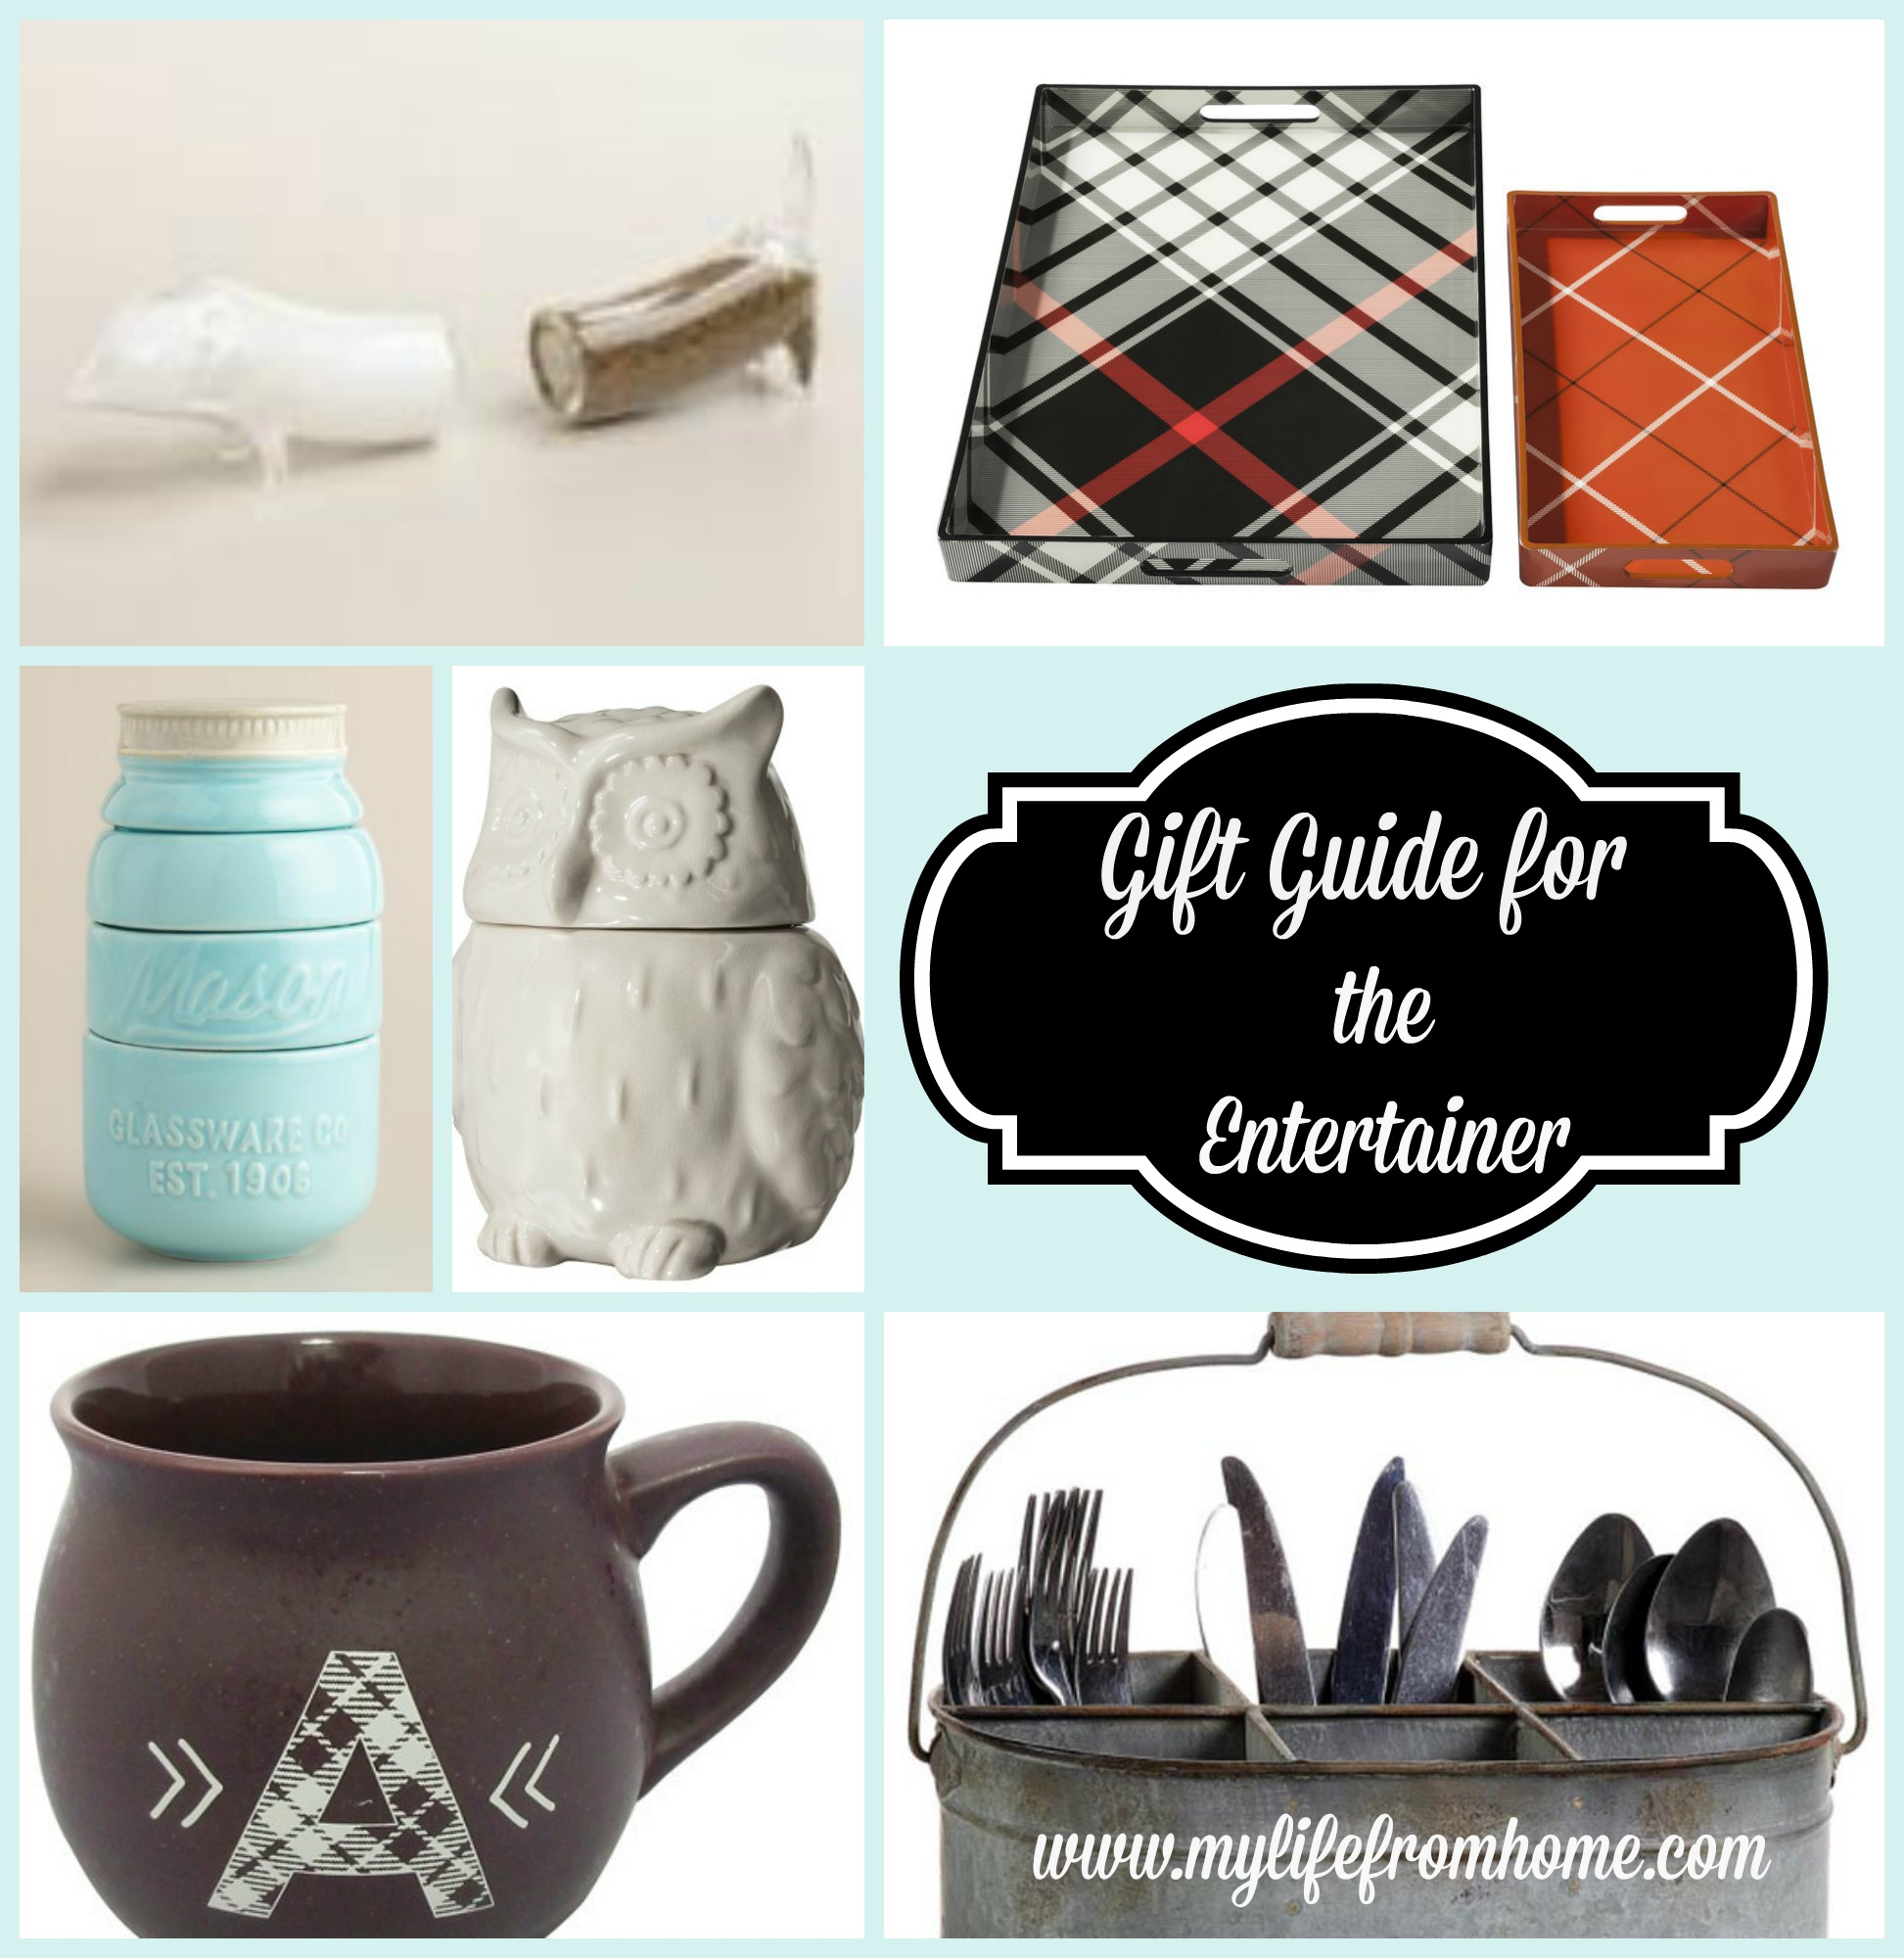 Gift Guide for the Entertainer by www.mylifefromhome.com